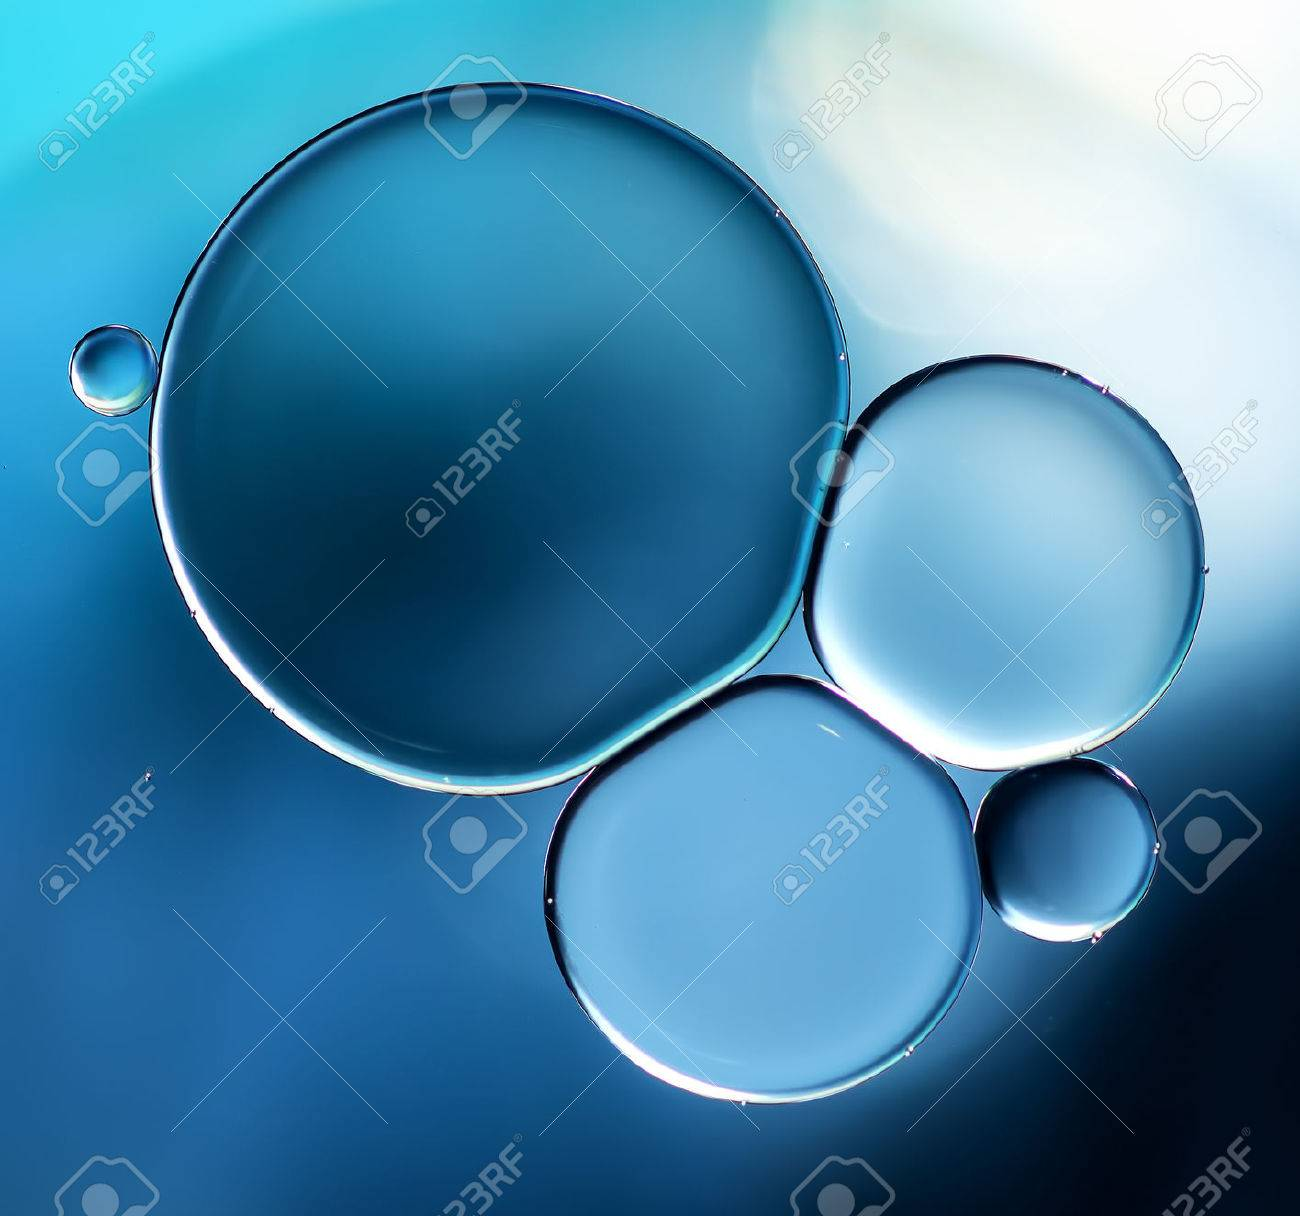 Abstract background, blue oil droplets on water surface. Beautiful macro abstraction - 44225984